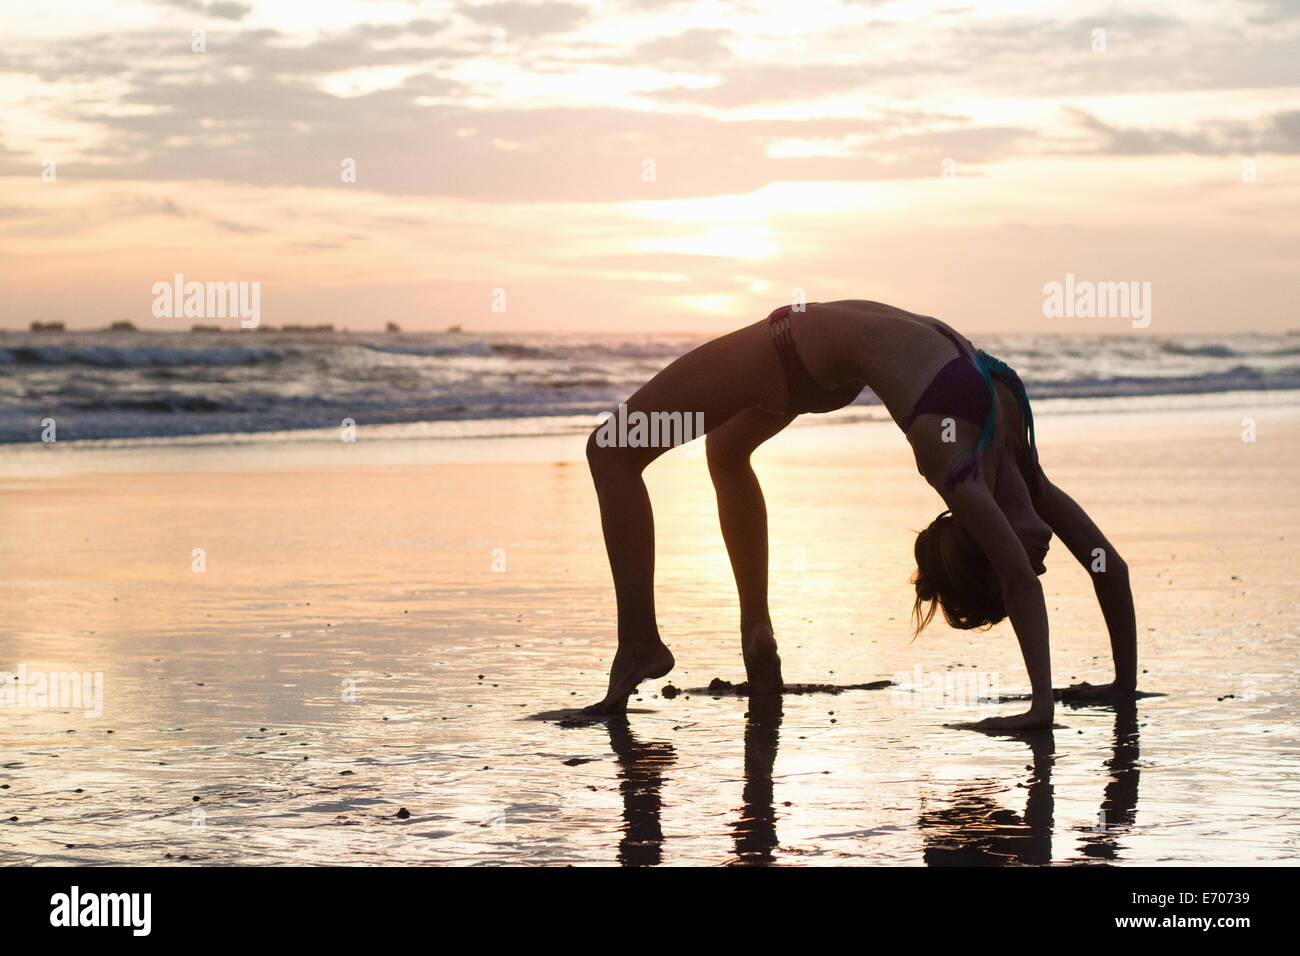 Mid adult woman bending over backwards on beach at sunset, Nosara, Guanacaste, Costa Rica - Stock Image